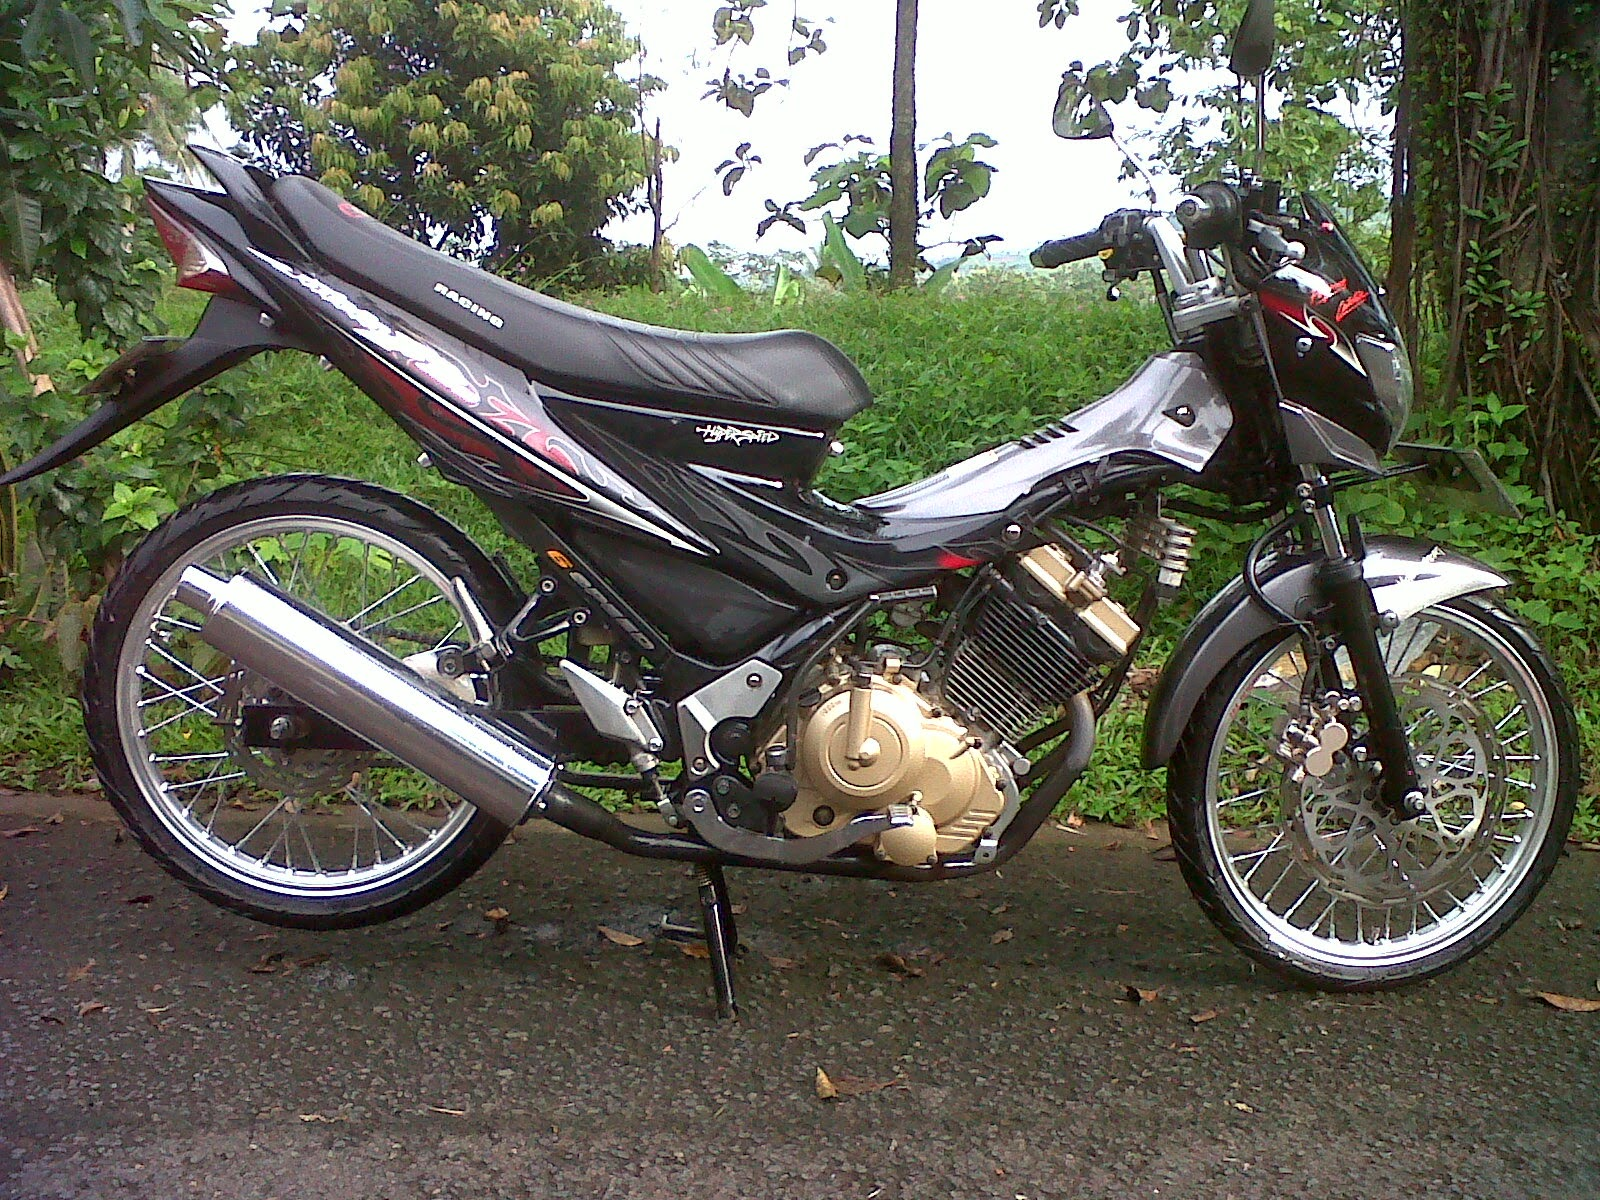 MODIFIKASI MOTOR SATRIA FU DENGAN VELG JERUJI WELCOME TO BLOG